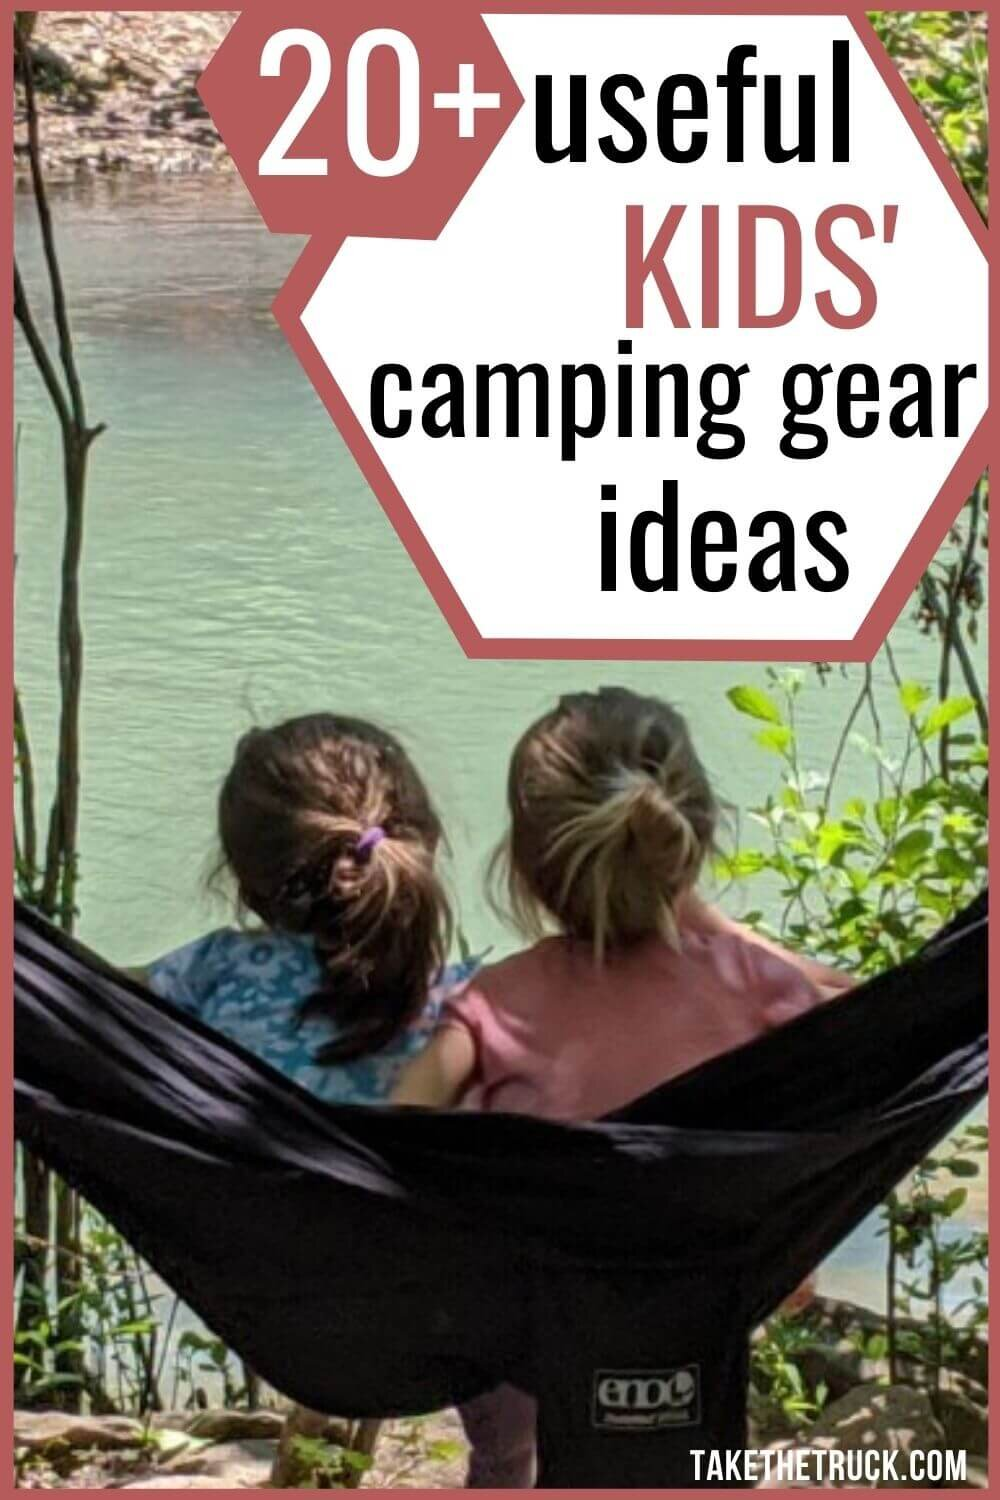 Looking for the best kids' camping gear to buy for the children in your life? Here's over 20 useful camping gear ideas that make great outdoor gear gifts for kids, from babies on up to teens.